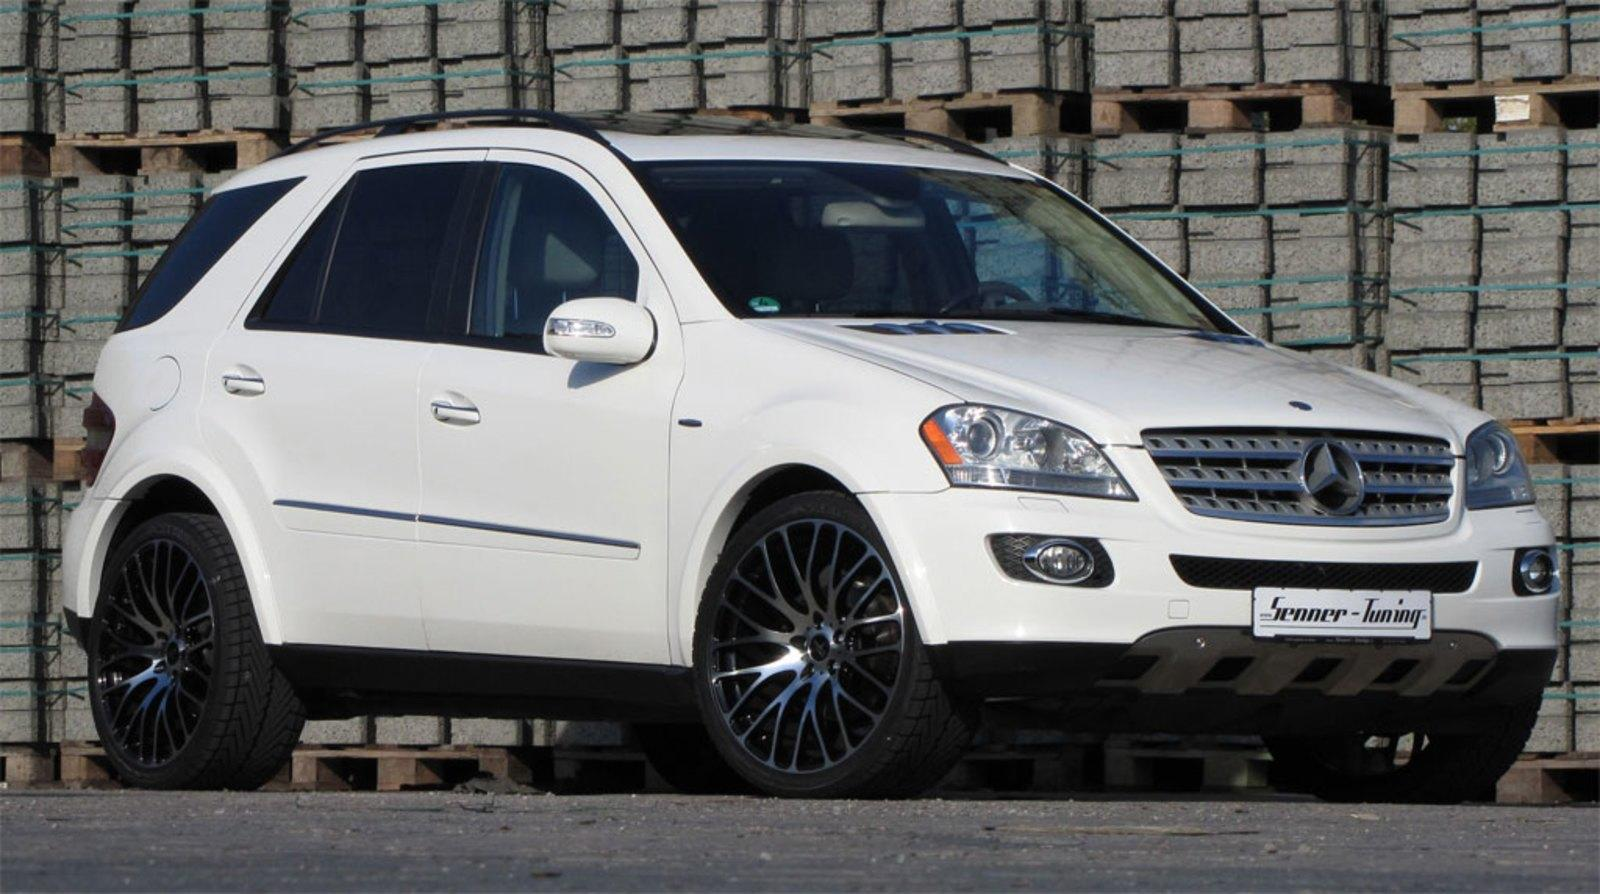 2010 mercedes ml500 by senner tuning ag review top speed. Black Bedroom Furniture Sets. Home Design Ideas